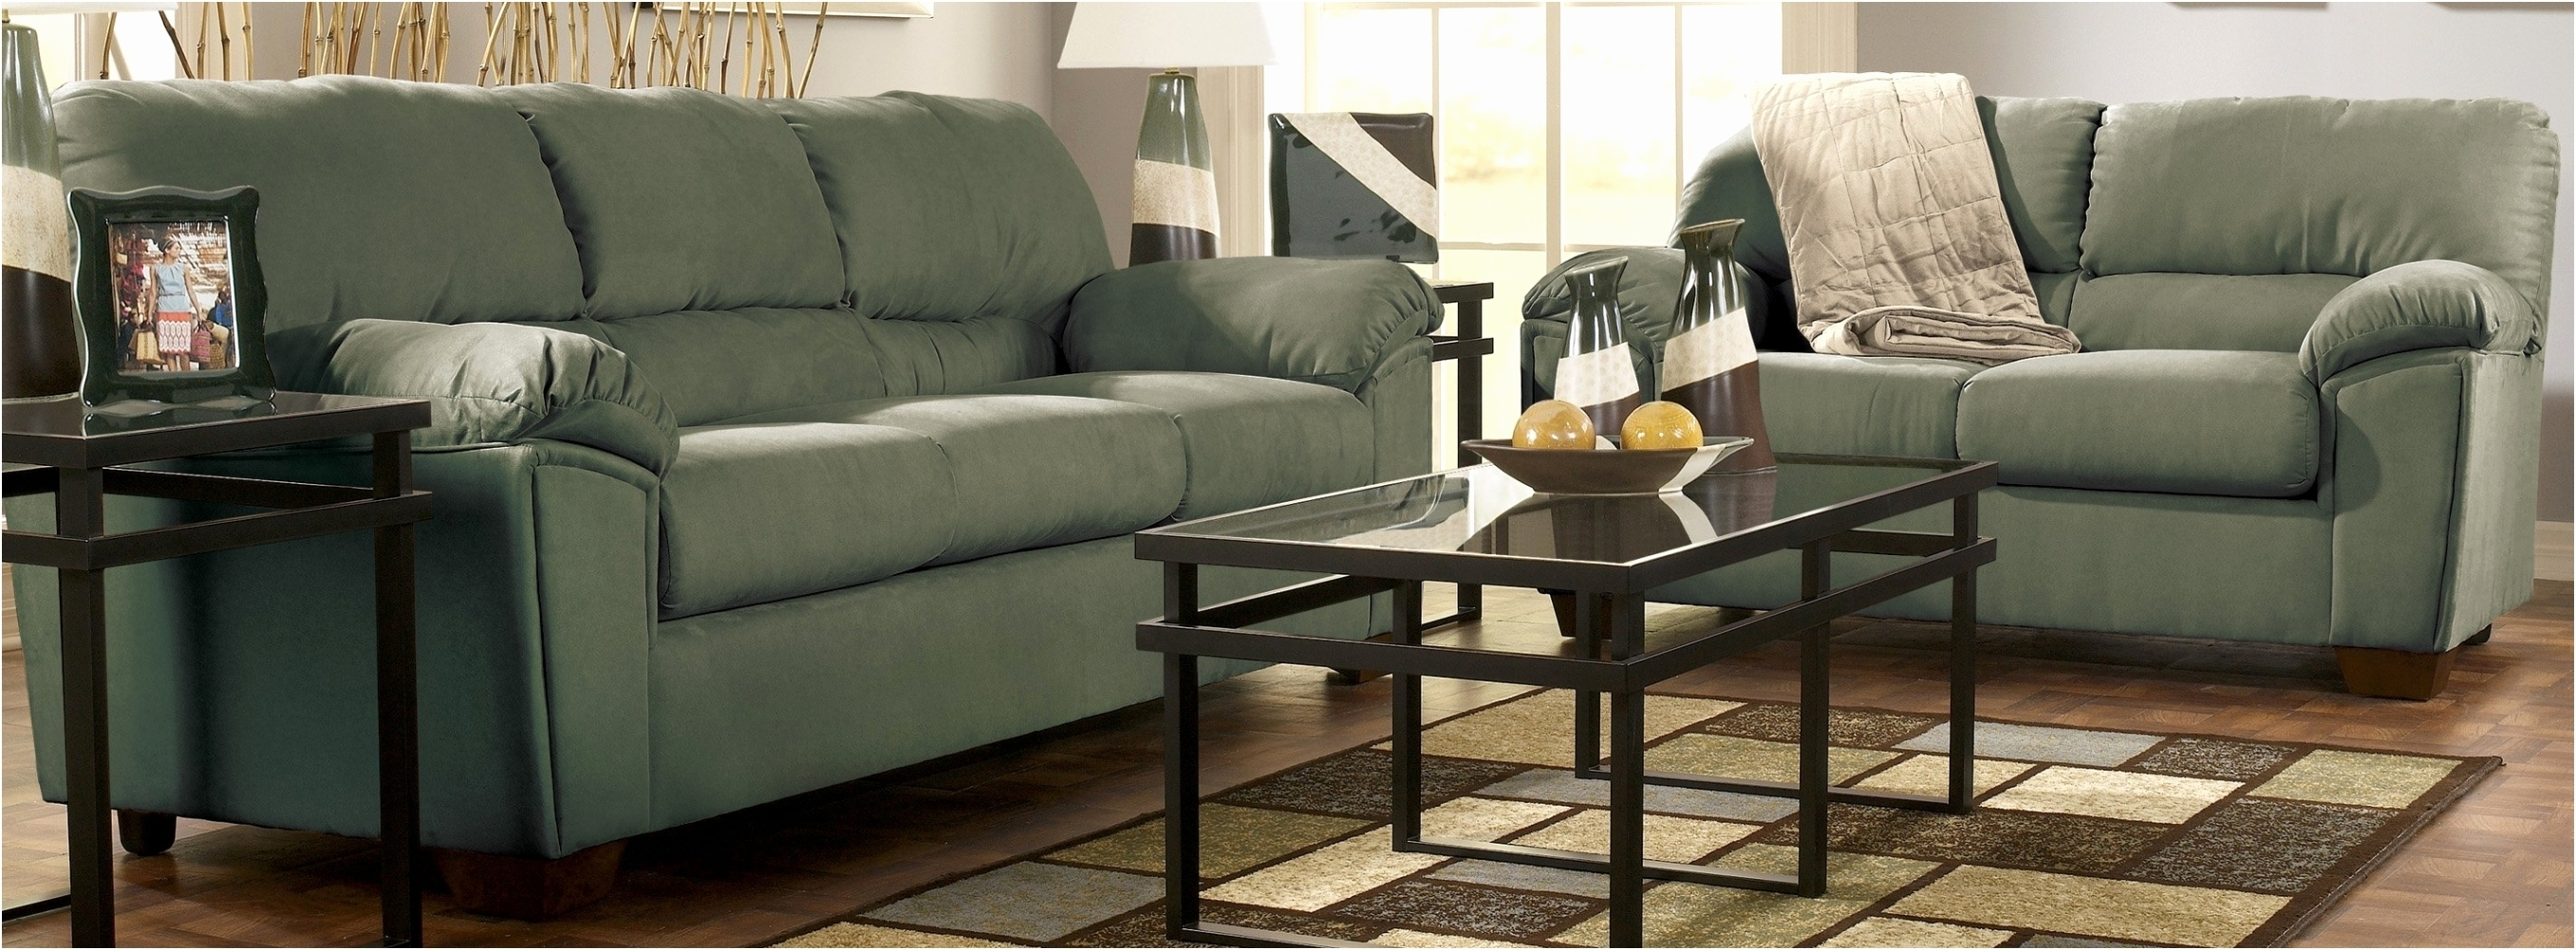 Extraordinary Affordable Living Room Sets Cheap For With Sleeper Pertaining To Kitchener Sectional Sofas (View 9 of 10)